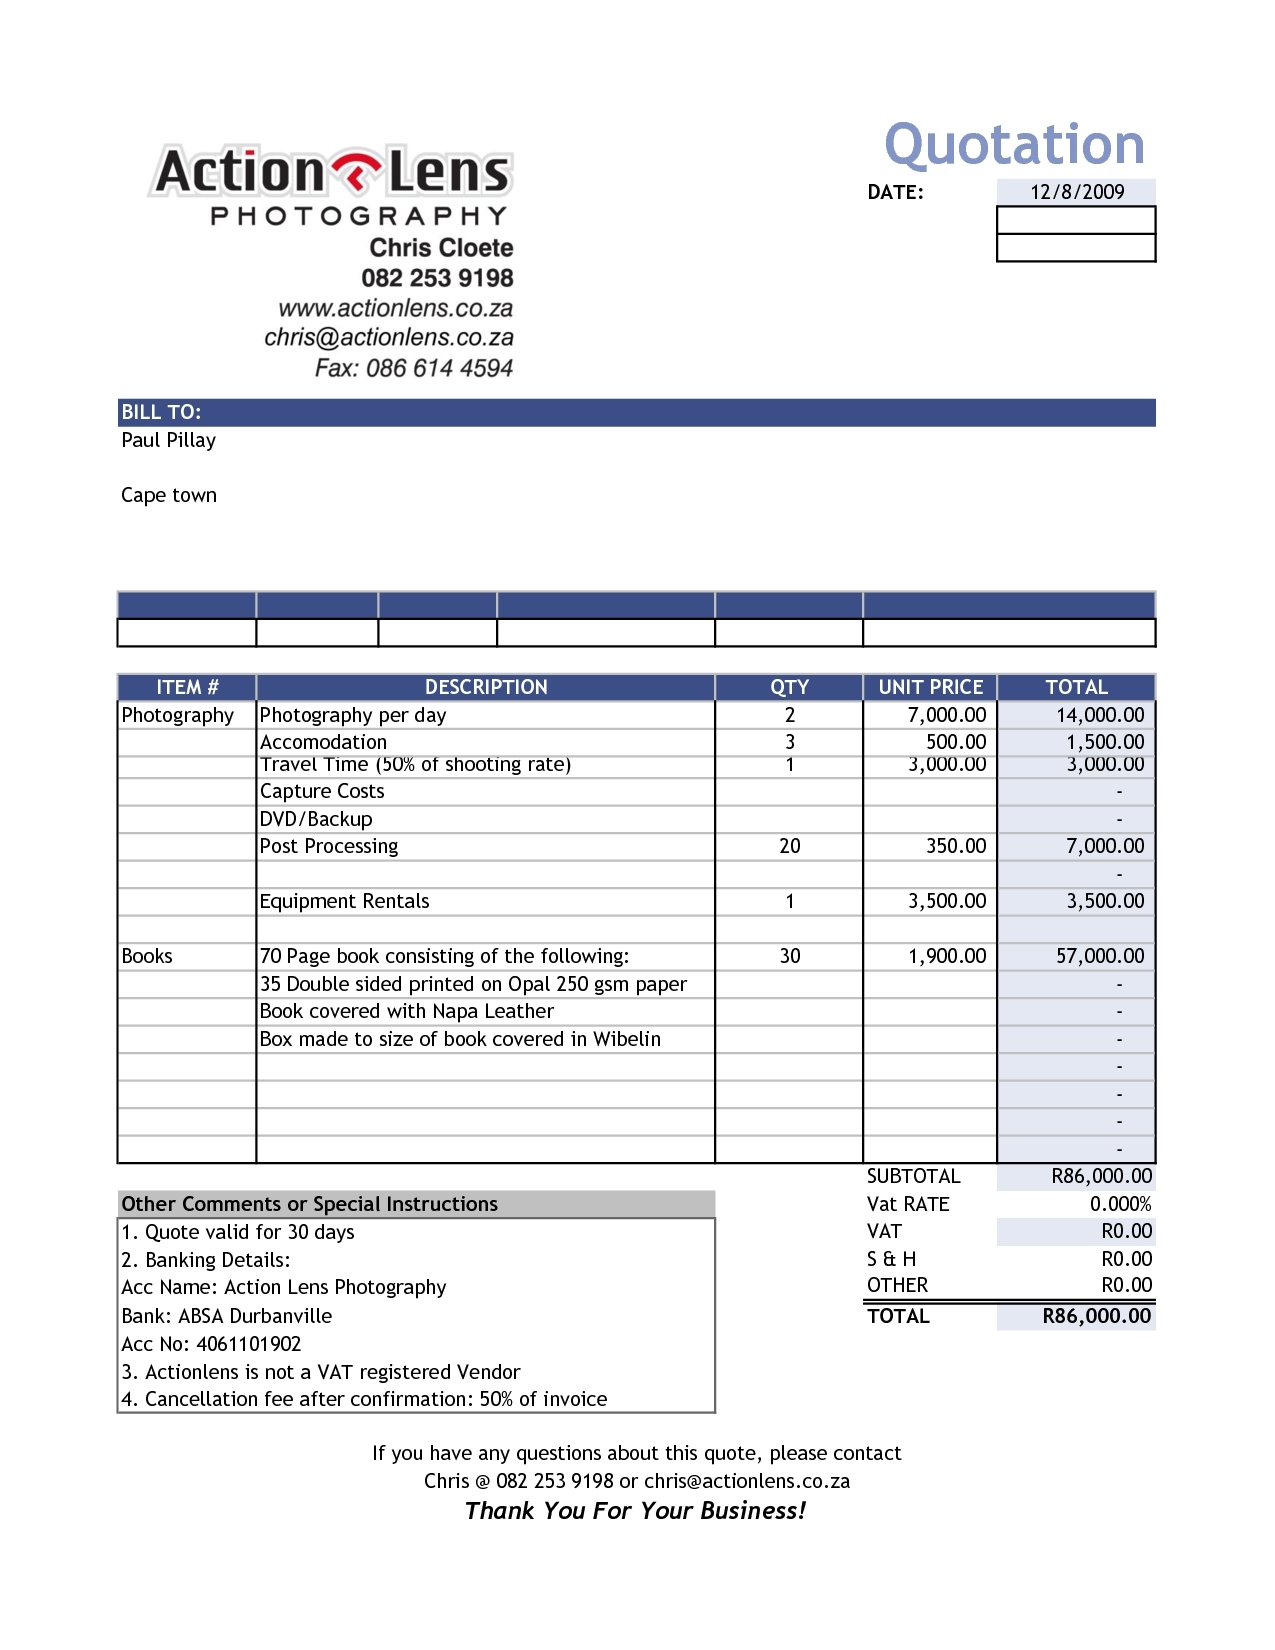 sale invoice format invoice template free 2016 sample of sales invoice